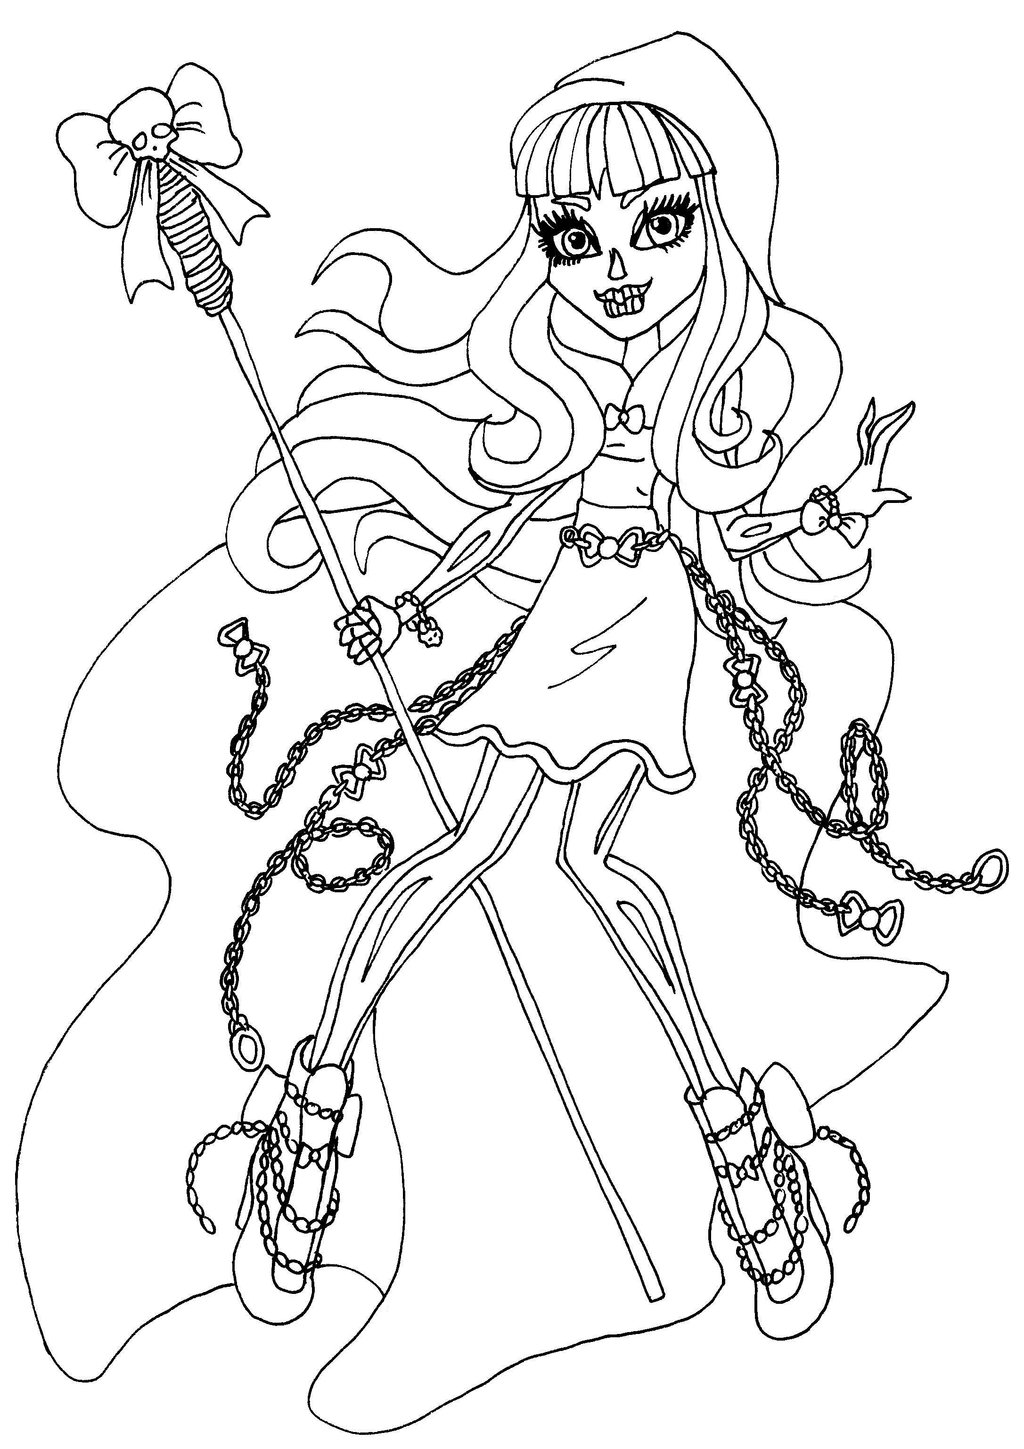 Monster High Drawing At Getdrawings Com Free For Personal Use